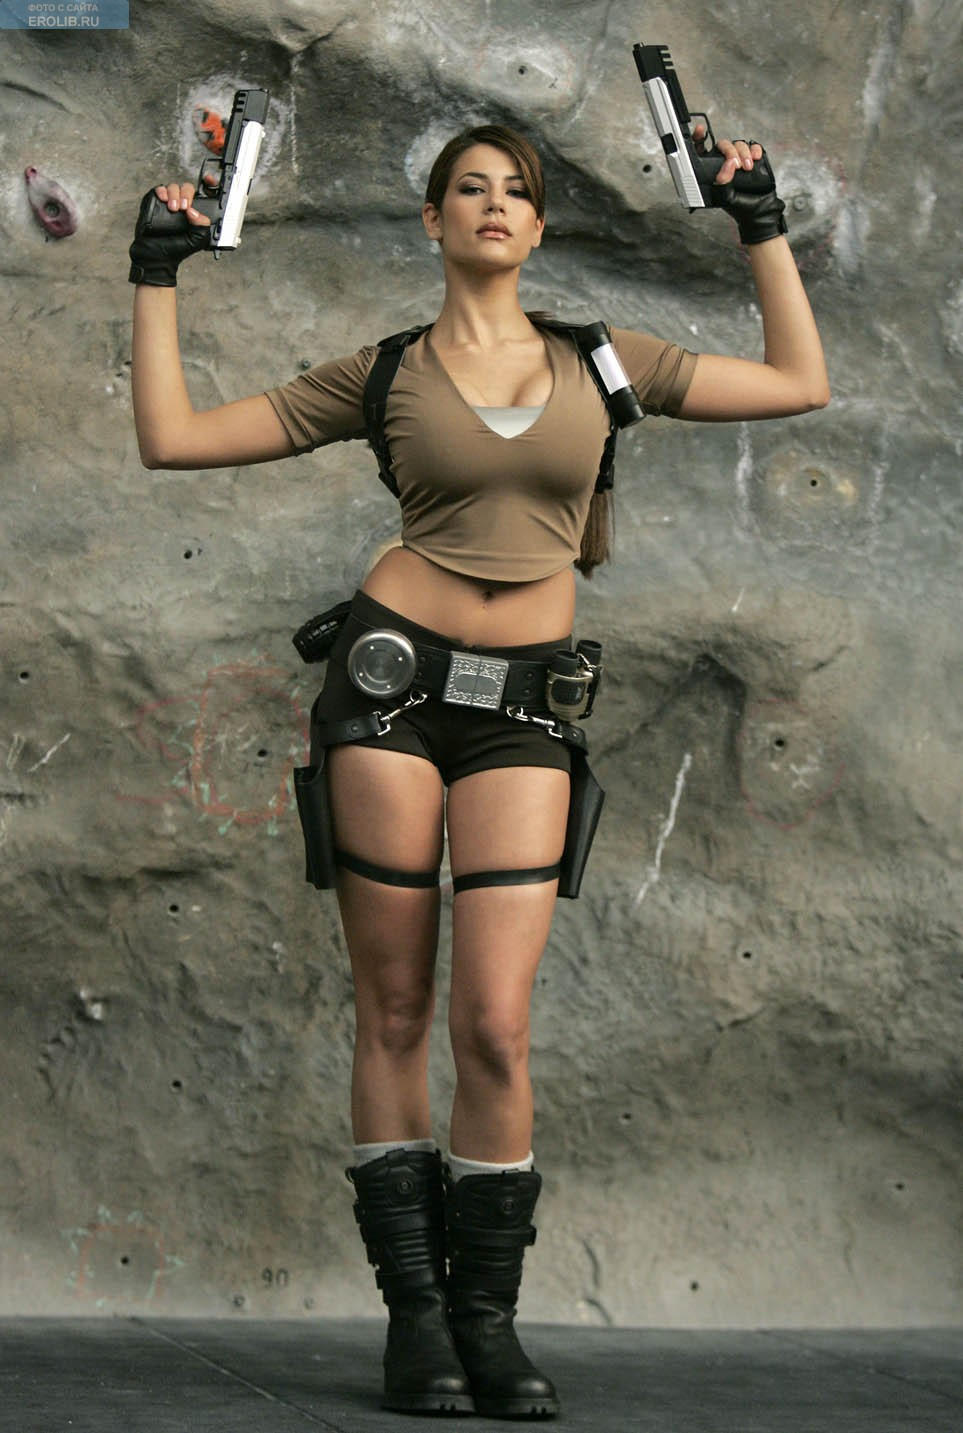 Lara crodt monster hentai pic porn photos